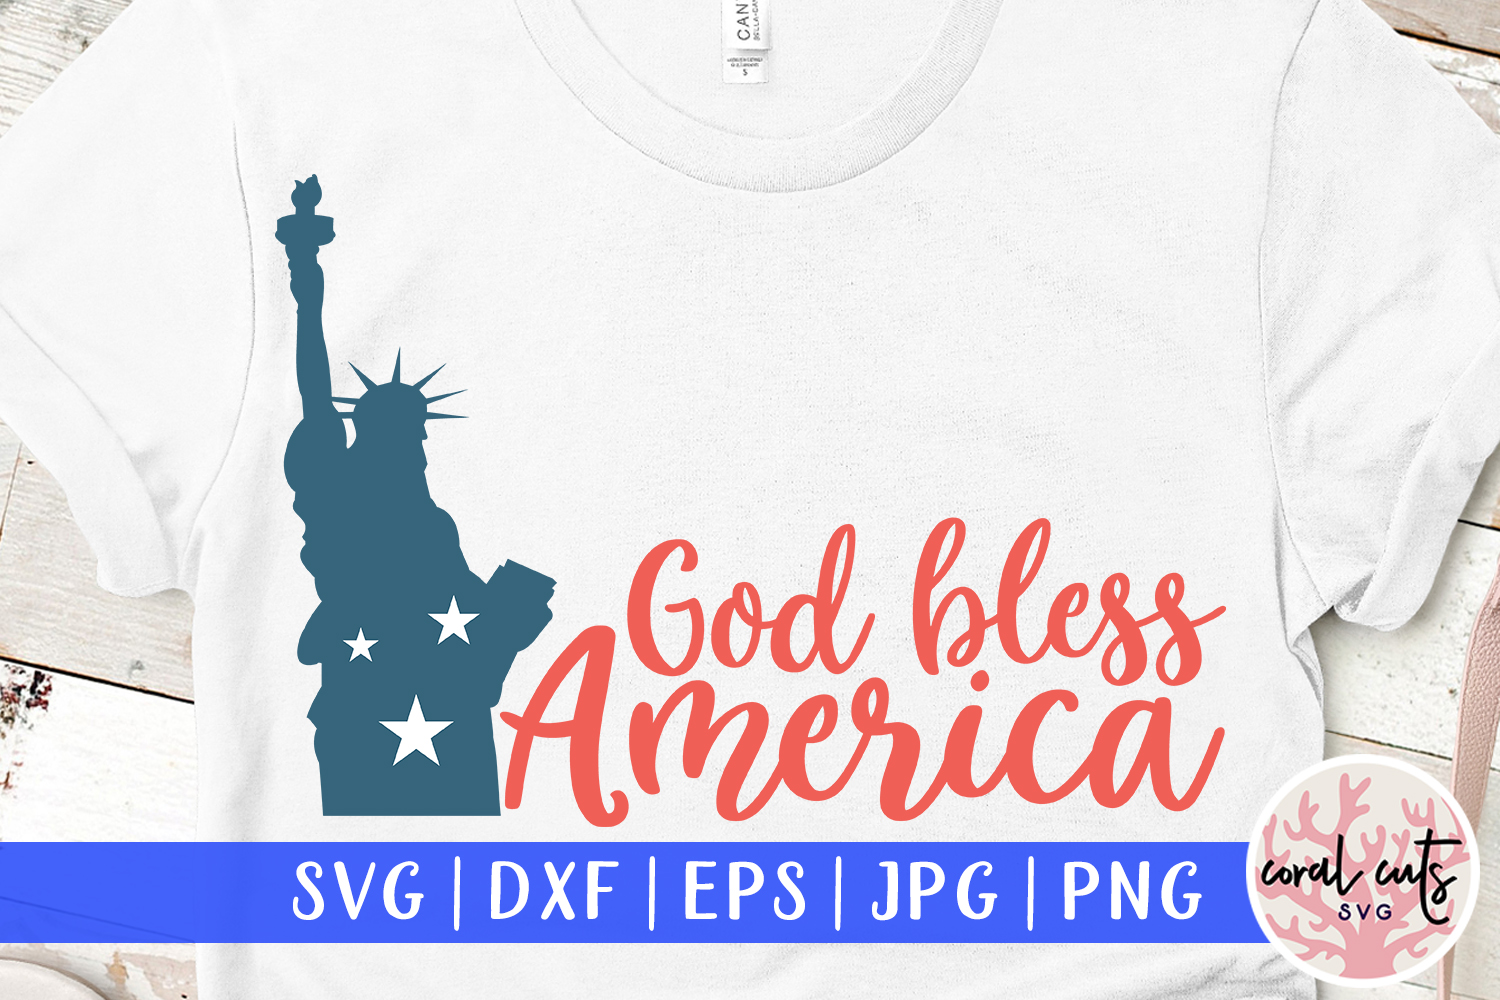 Download Free God Bless America Graphic By Coralcutssvg Creative Fabrica for Cricut Explore, Silhouette and other cutting machines.